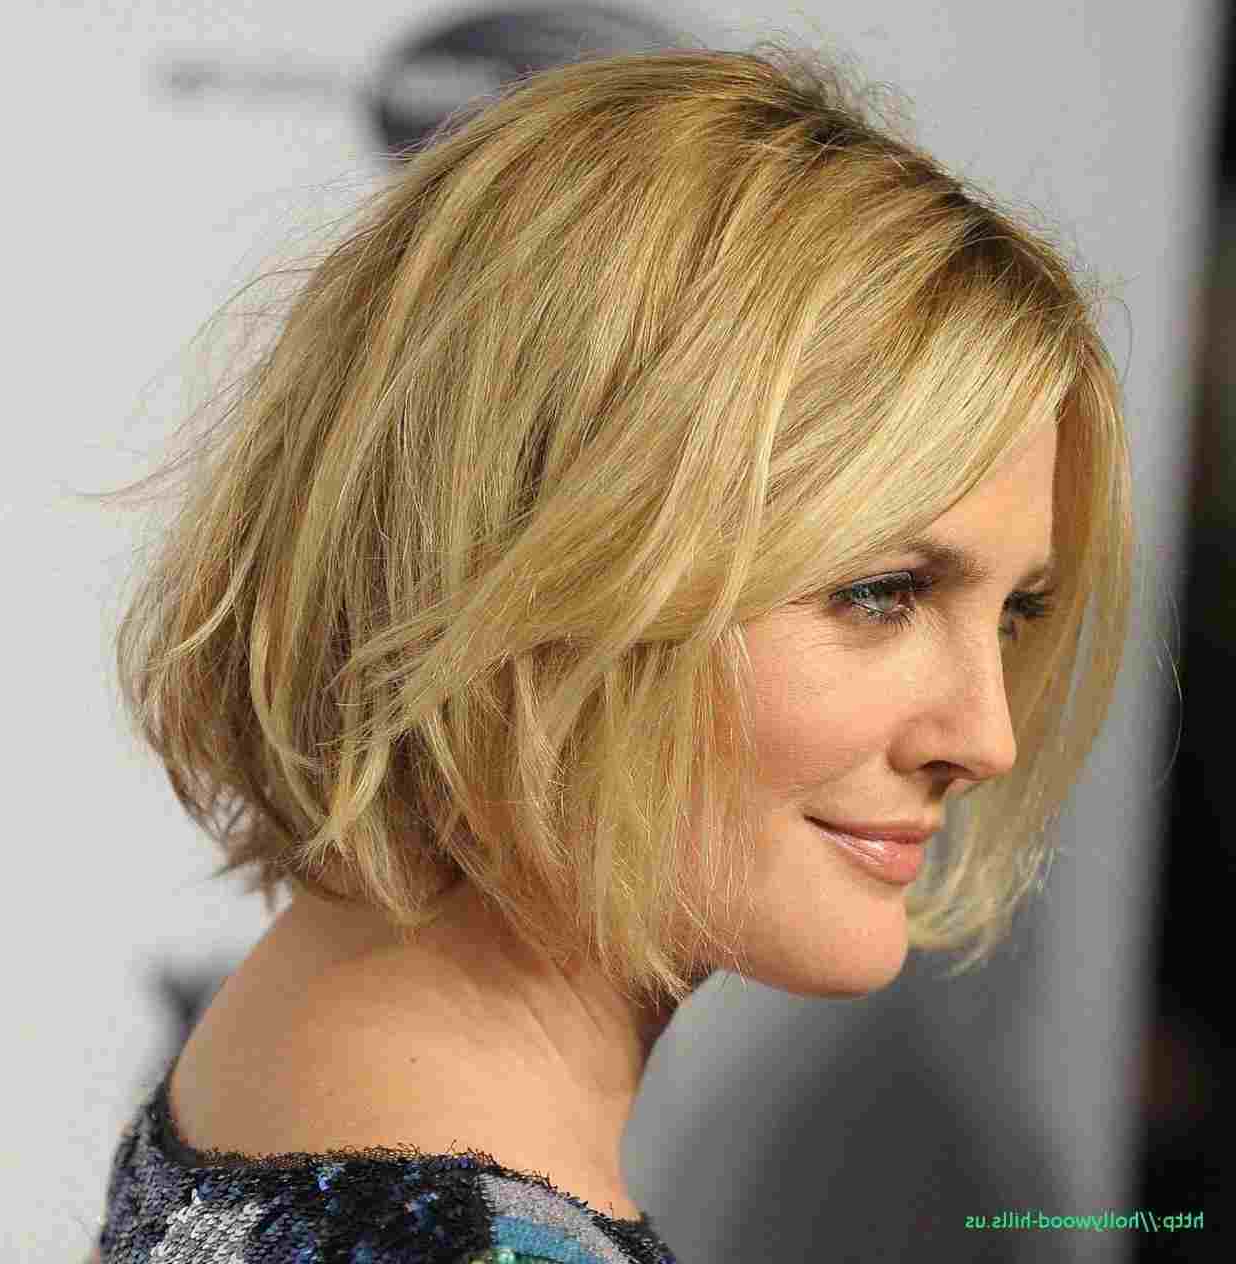 Haircut 2016 Bob Hairstyles Curly Justswimflcomrhjustswimflcom Cute Within Cute Curly Bob Hairstyles (View 21 of 25)